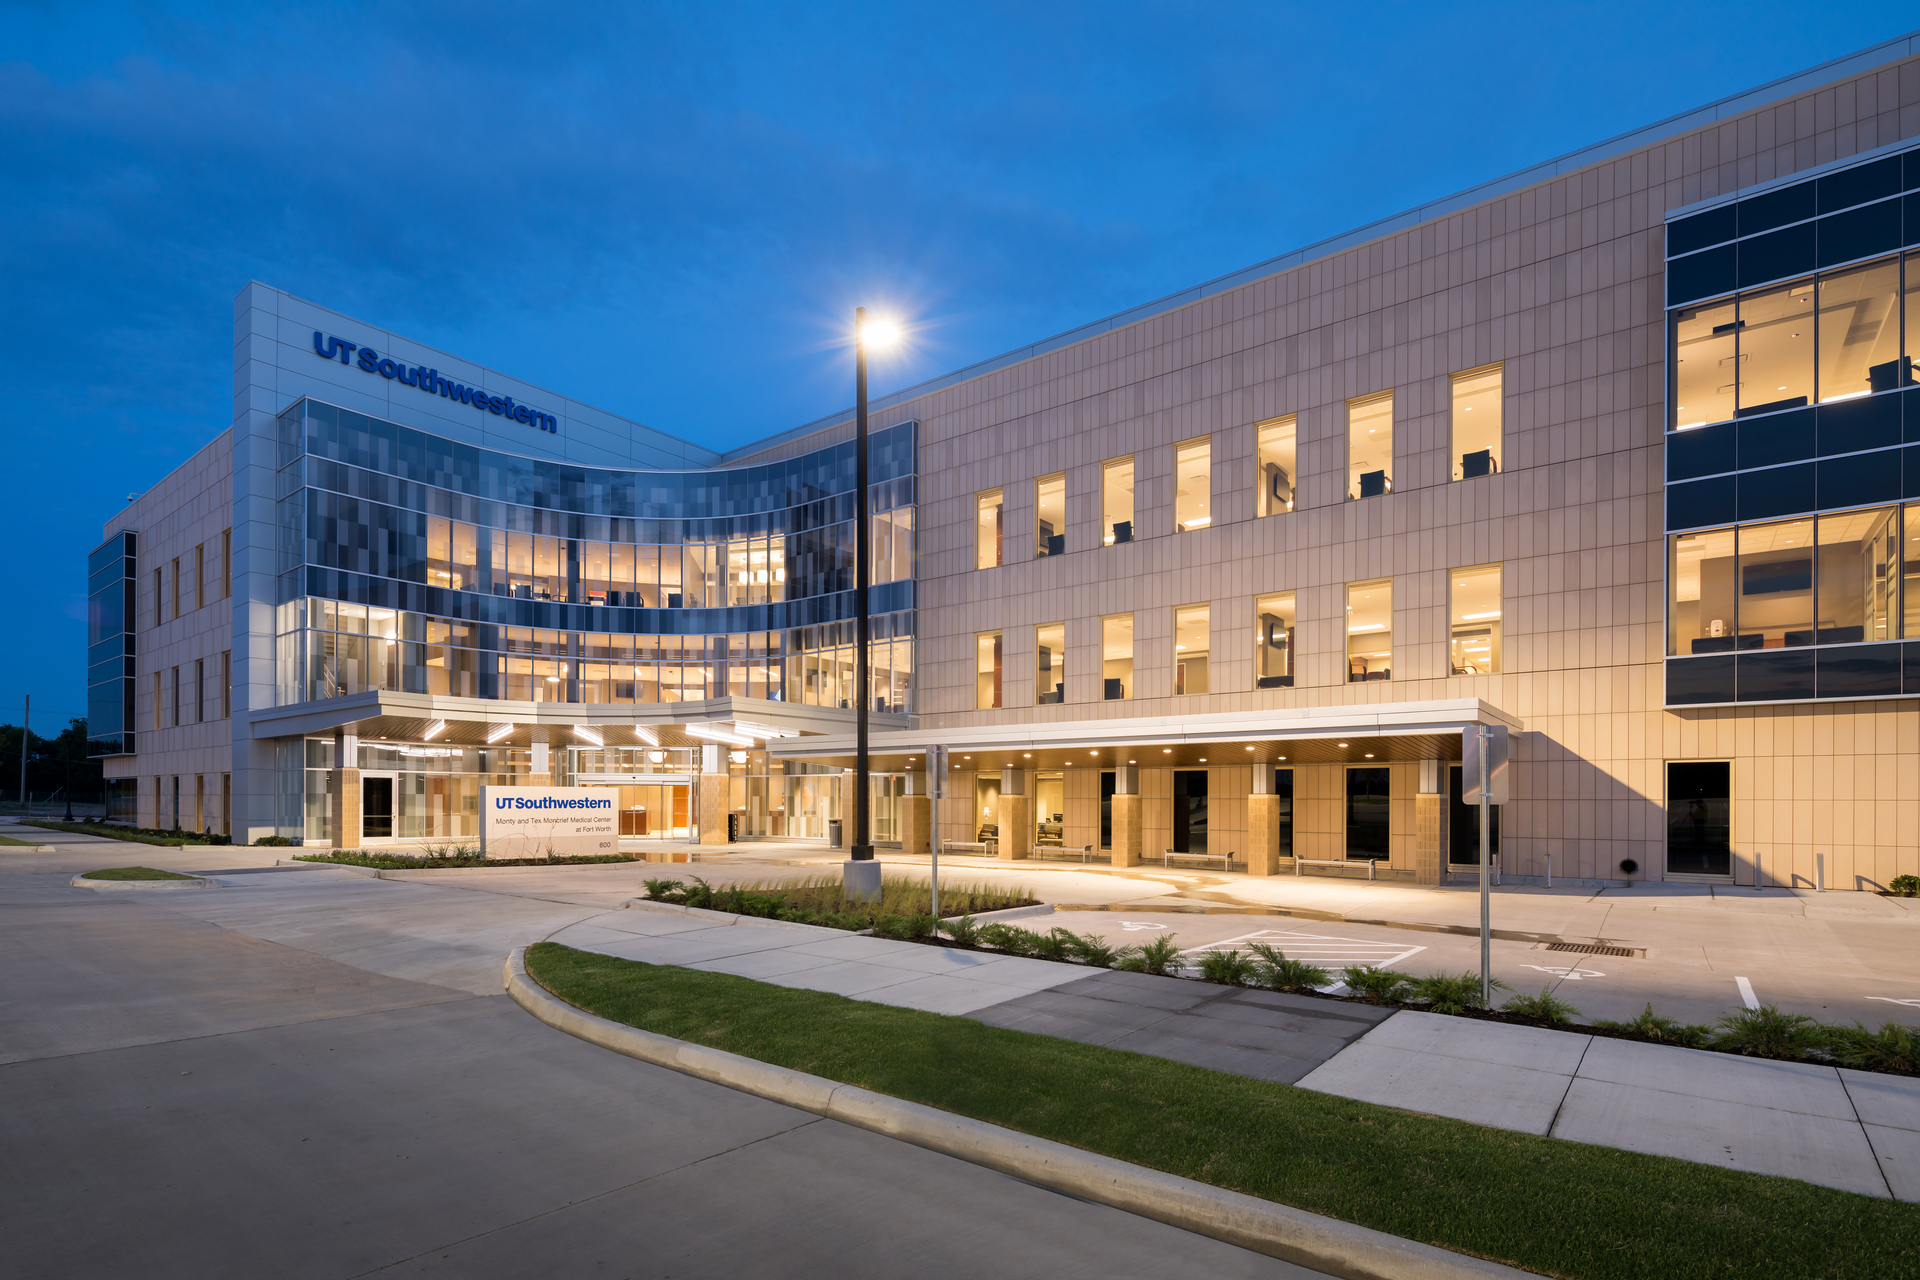 The UT Southwestern Moncrief Medical Center project in Fort Worth, Texas utilizes a vertical installation of Terreal Piterak Slim terracotta wall cladding.